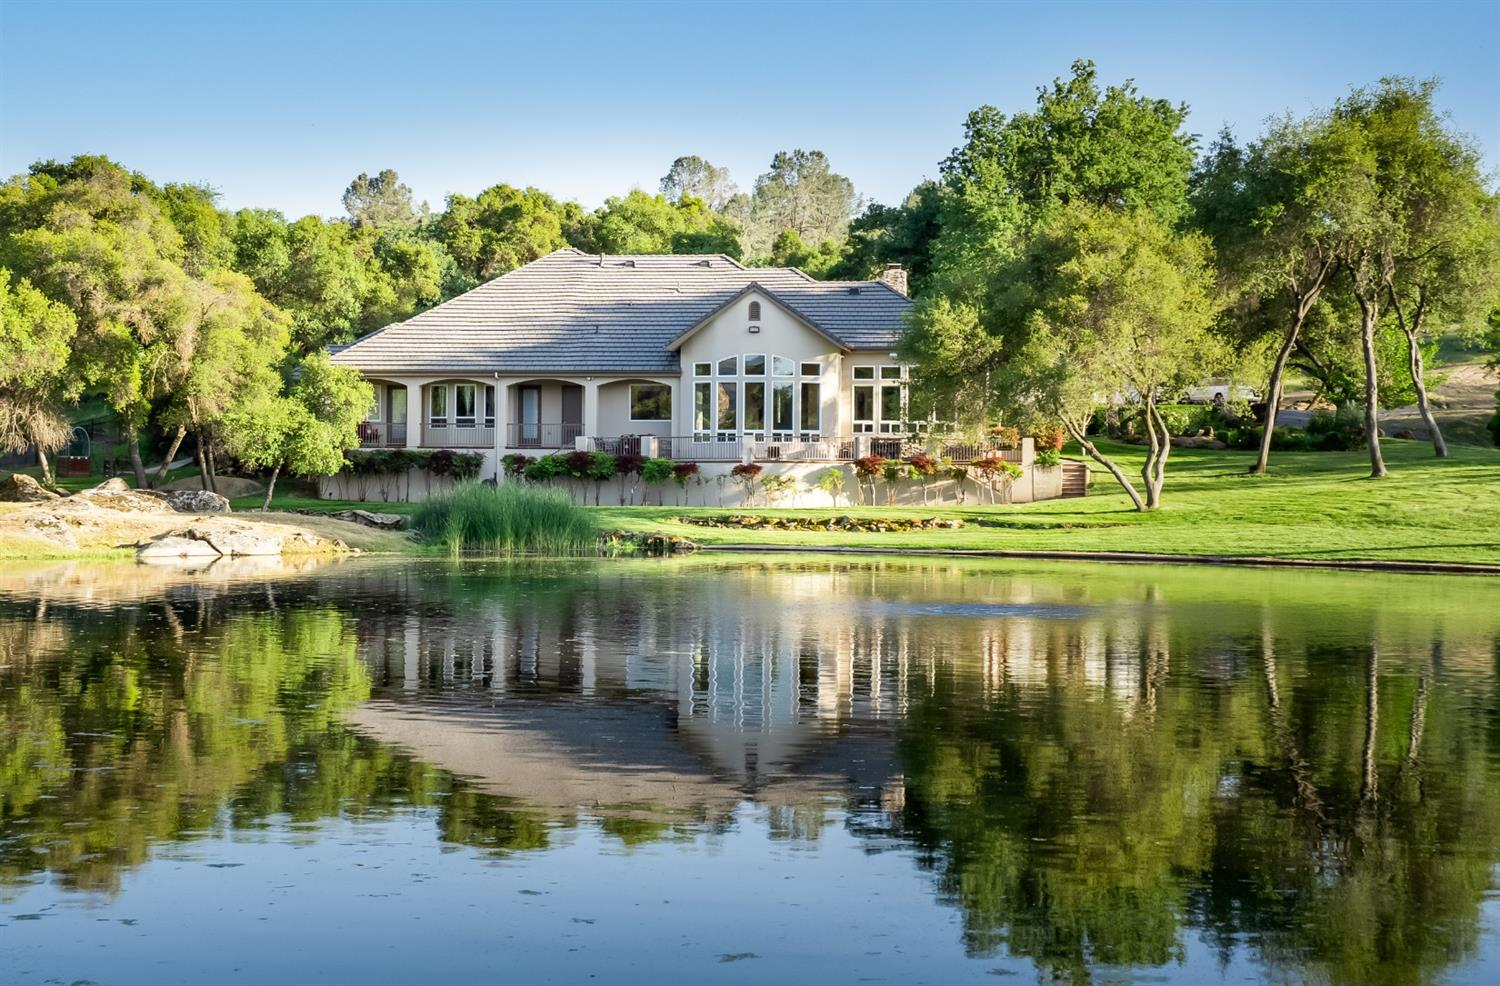 This stunning residential provincial estate is nestled in a harmonious rural setting spanning approximately 120 acres on two contiguous parcels. Embraced by a region known for premium terroir, renowned vineyards, and Mediterranean climate, this property endows a unique agriculture opportunity and development potential. Diamond Springs Ranch is suitable for various agriculture pursuits: Agri-tourism operations, Gentleman's Ranch, equestrian operations, commercial grape and/or olive production, vacation rental and wedding venue opportunities. There are two wells with abundant water. This spectacular estate grants a sophisticated turn-key opportunity with an upscale home that features a neutral palate, Terrazzo flooring, cathedral ceilings, and attractive design elements. A 2,400 sq. ft building structure is currently used as a shop accompanies the estate. Three year-round trophy stocked lakes and three stocked ponds surround the estate. It is only 27 miles to Yosemite National Park.